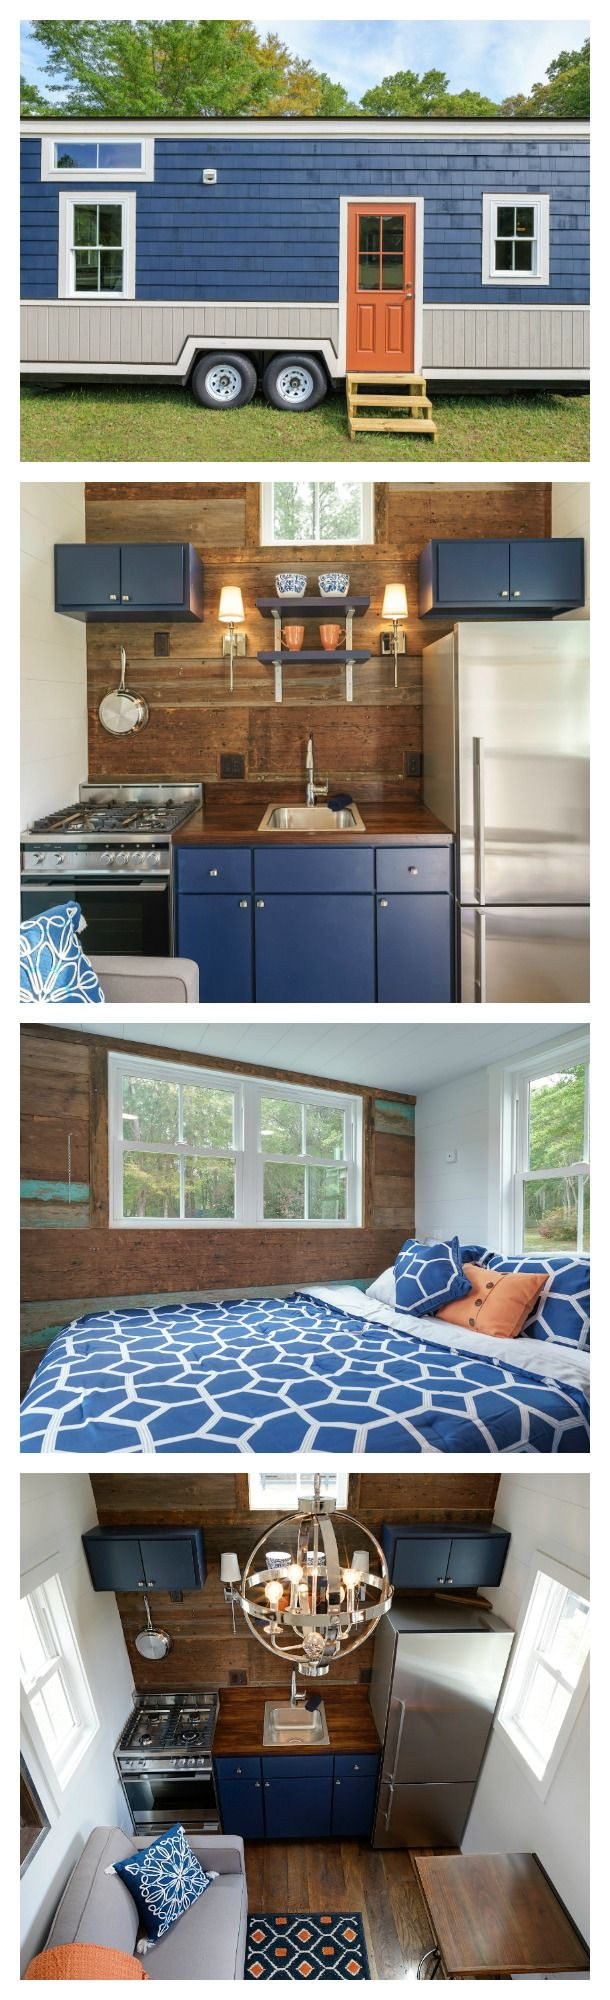 this tiny house breaks a major decorating rule tiny houses pinterest haus kleines. Black Bedroom Furniture Sets. Home Design Ideas